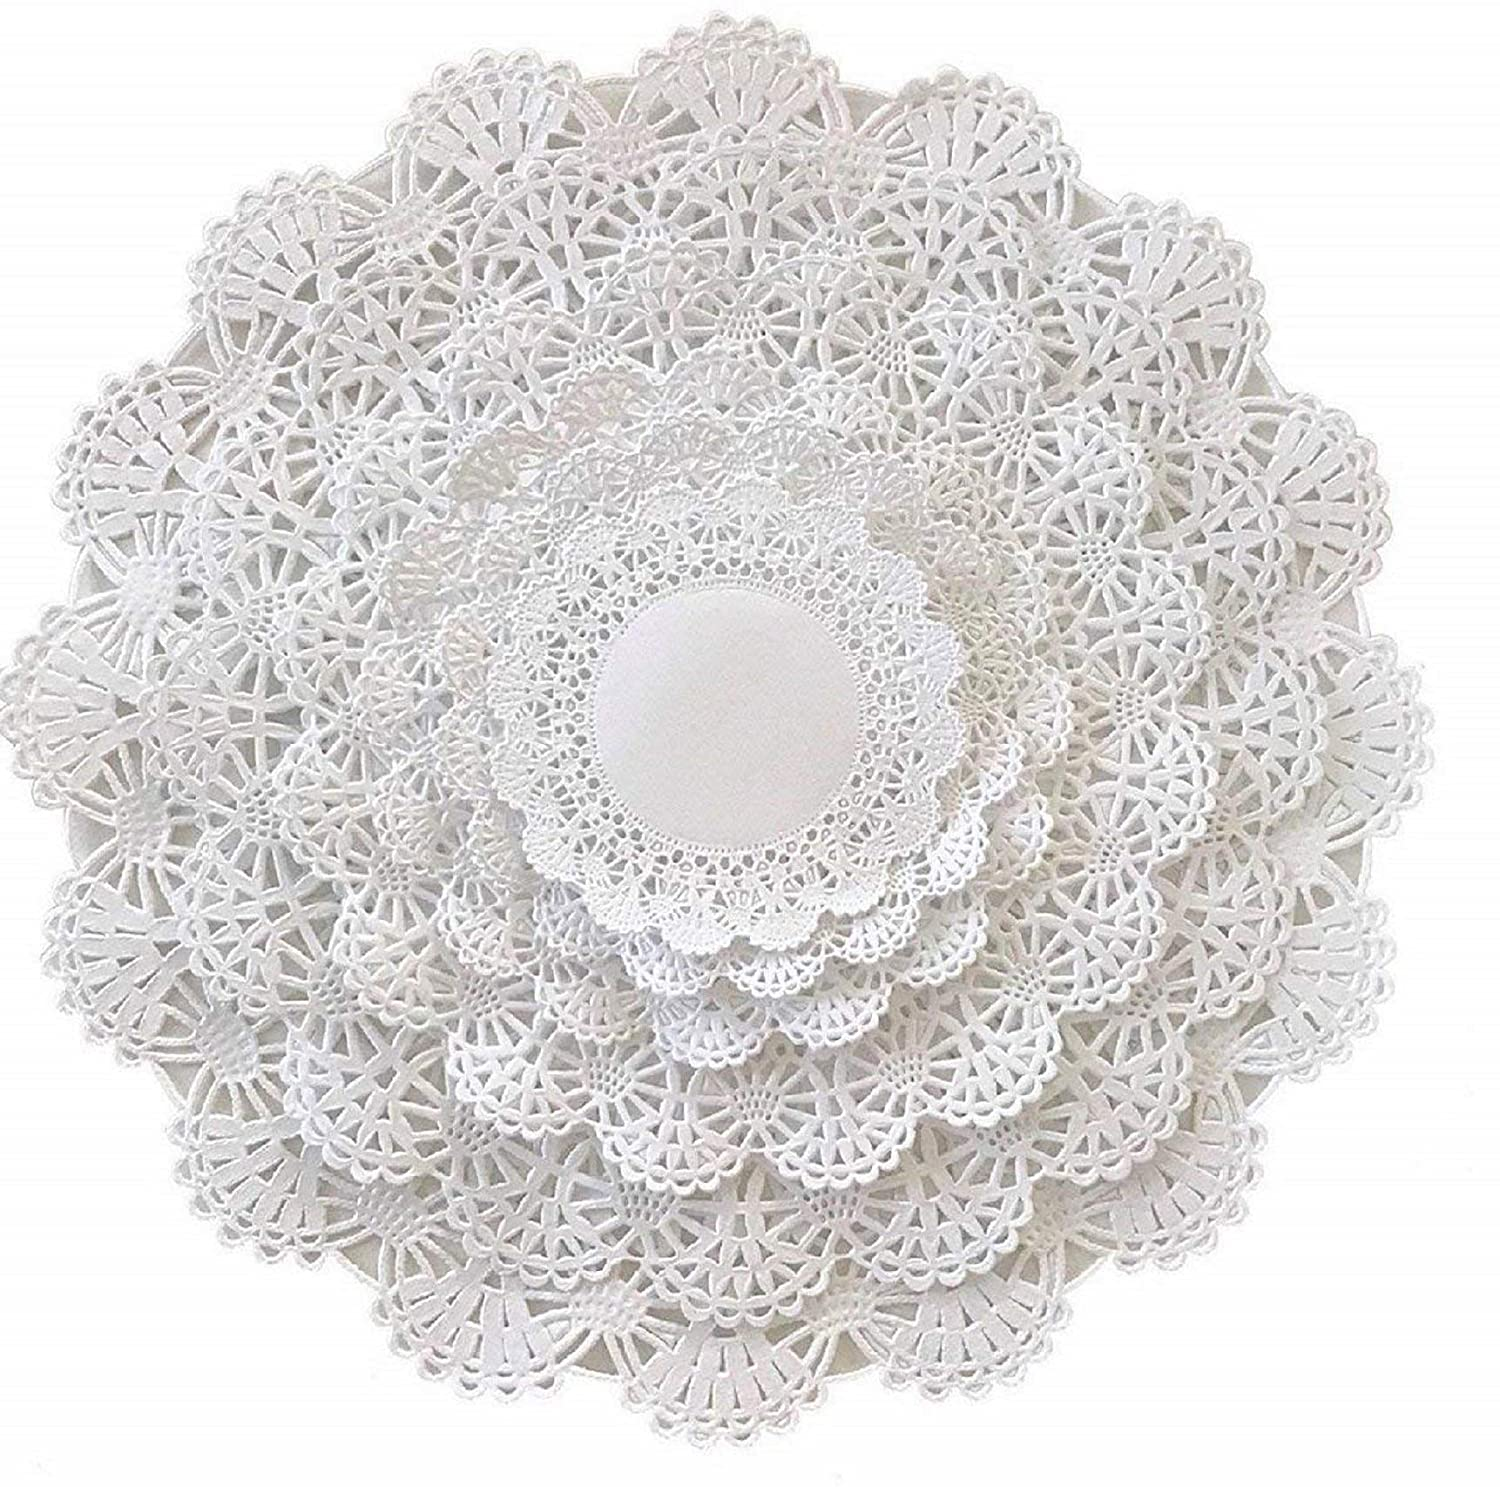 Round paper Lace Table Doilies – 4 5 6 8 10 and 12 inch Assorted Sizes White Decorative Tableware Placemats (Variety pack of 120 – 20 of each)